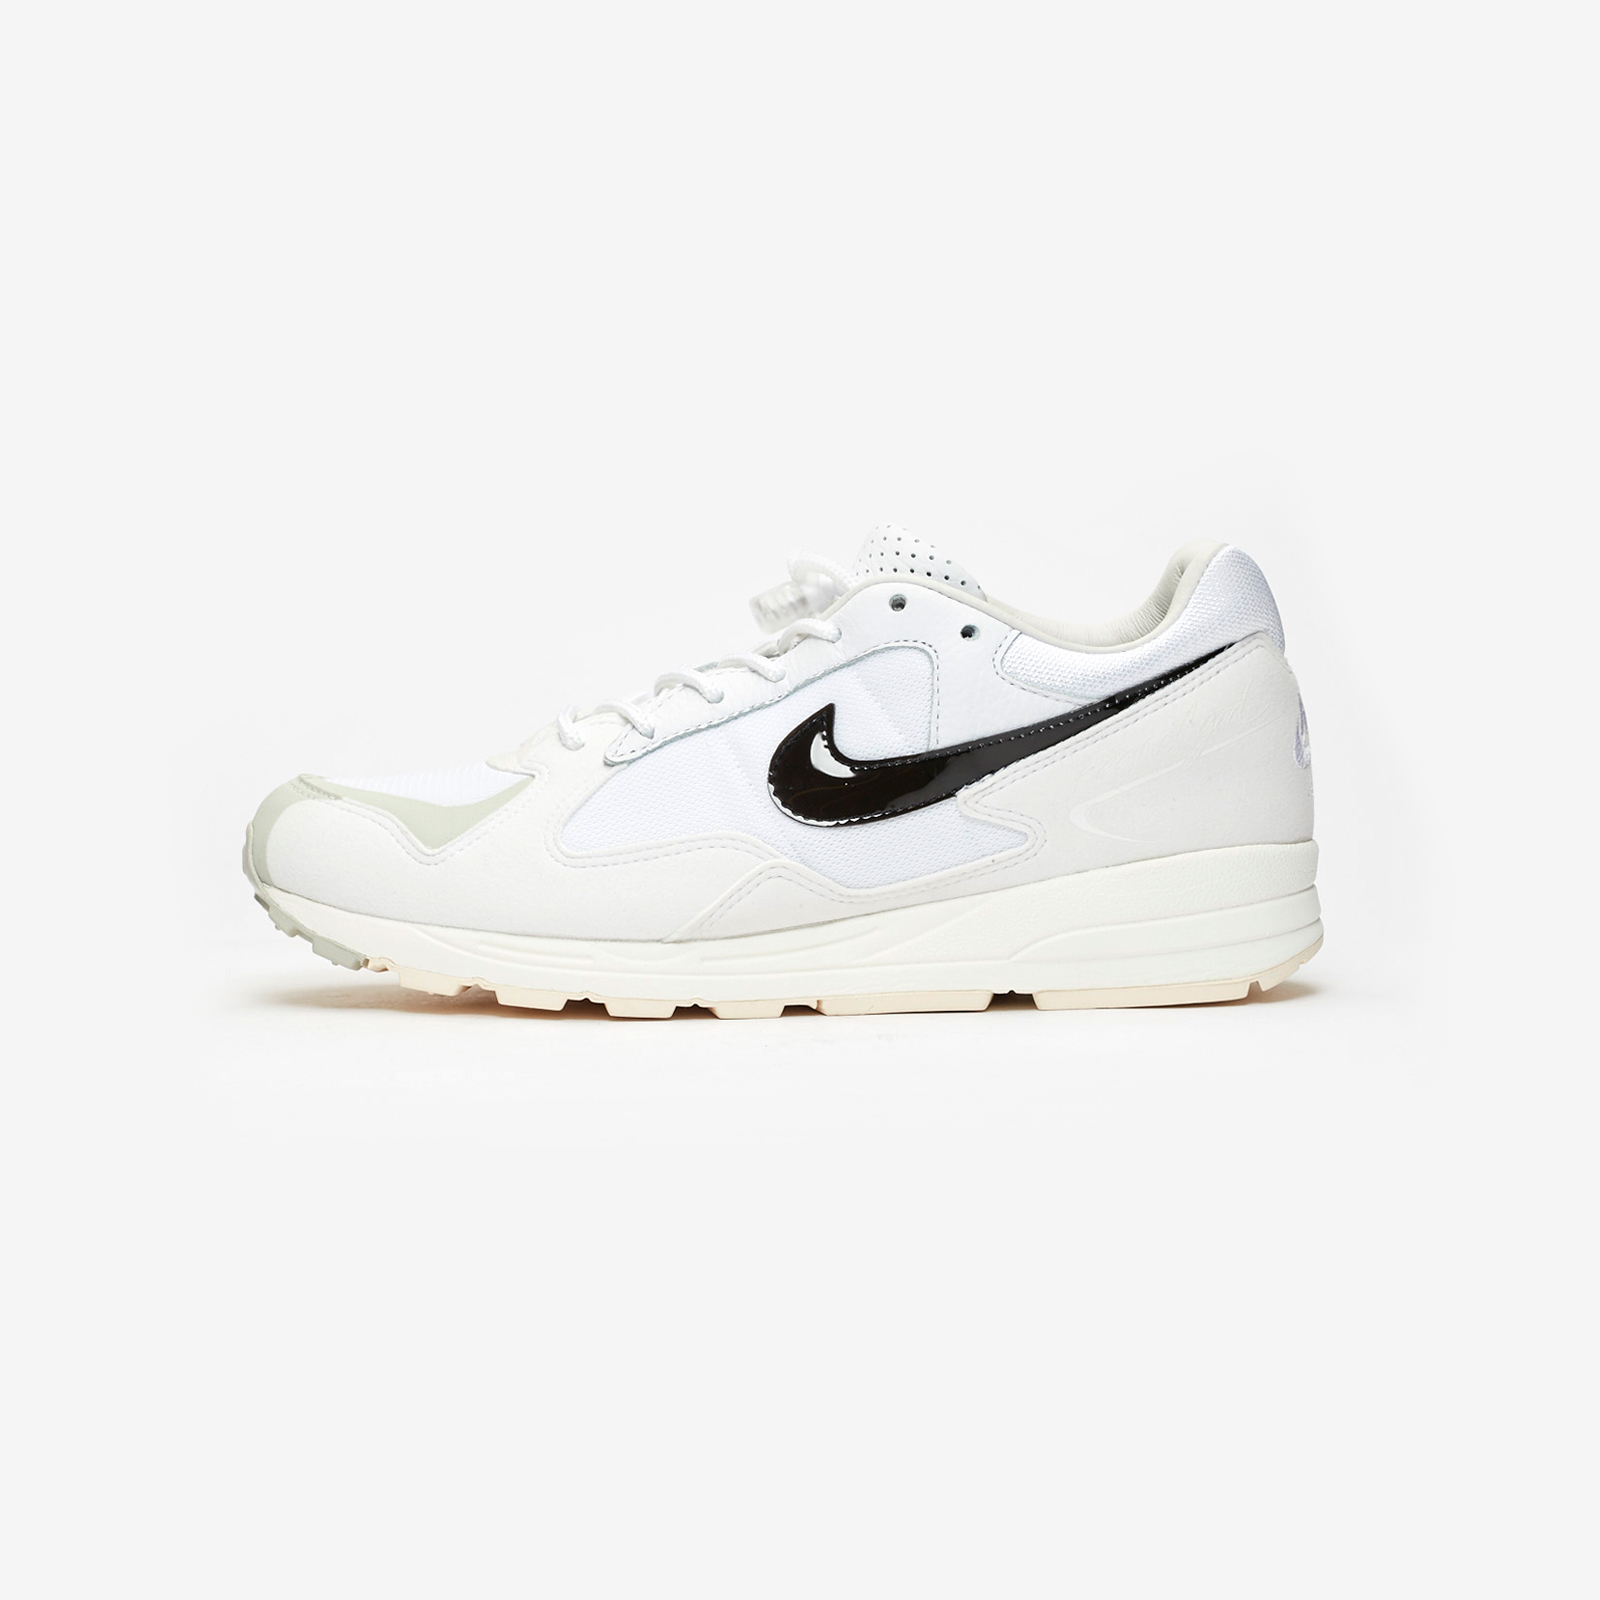 9d39fdf6536e Nike Air Skylon II   Fear Of God - Bq2752-100 - Sneakersnstuff ...